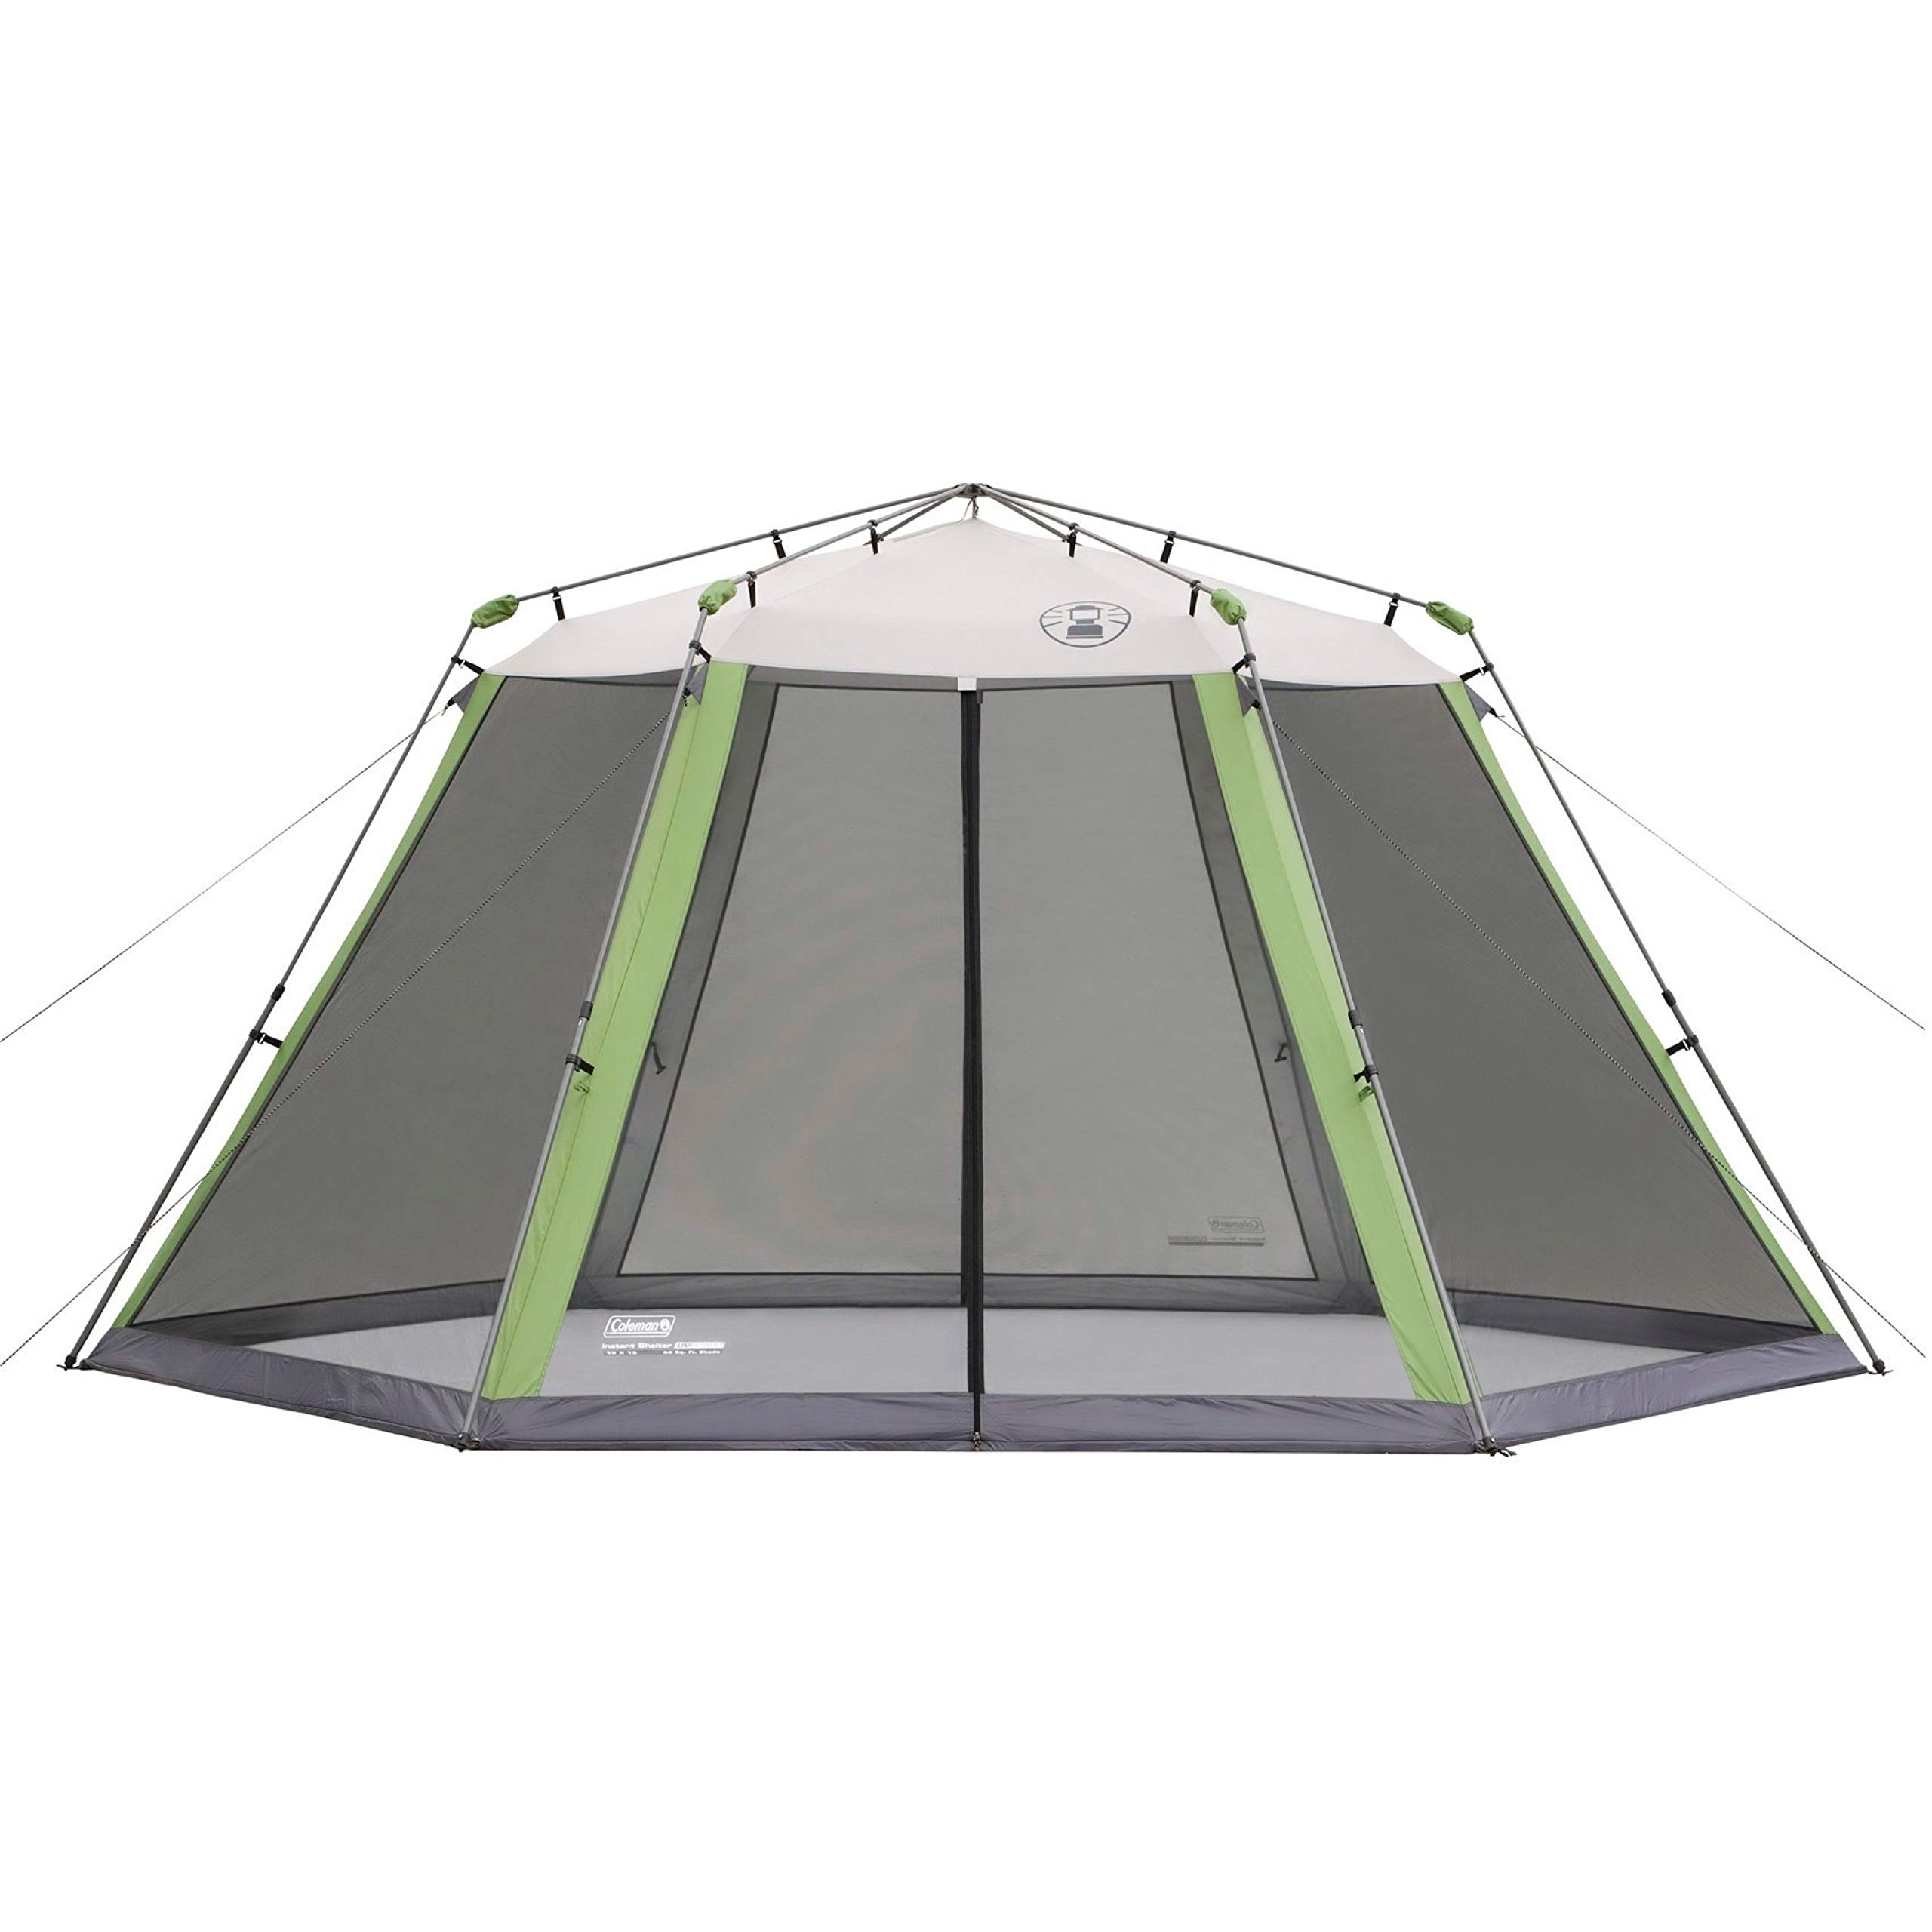 Coleman Screened Canopy Tent with Instant Setup   Outdoor Canopy and Sun Shade with 1 Minute Set Up by Coleman